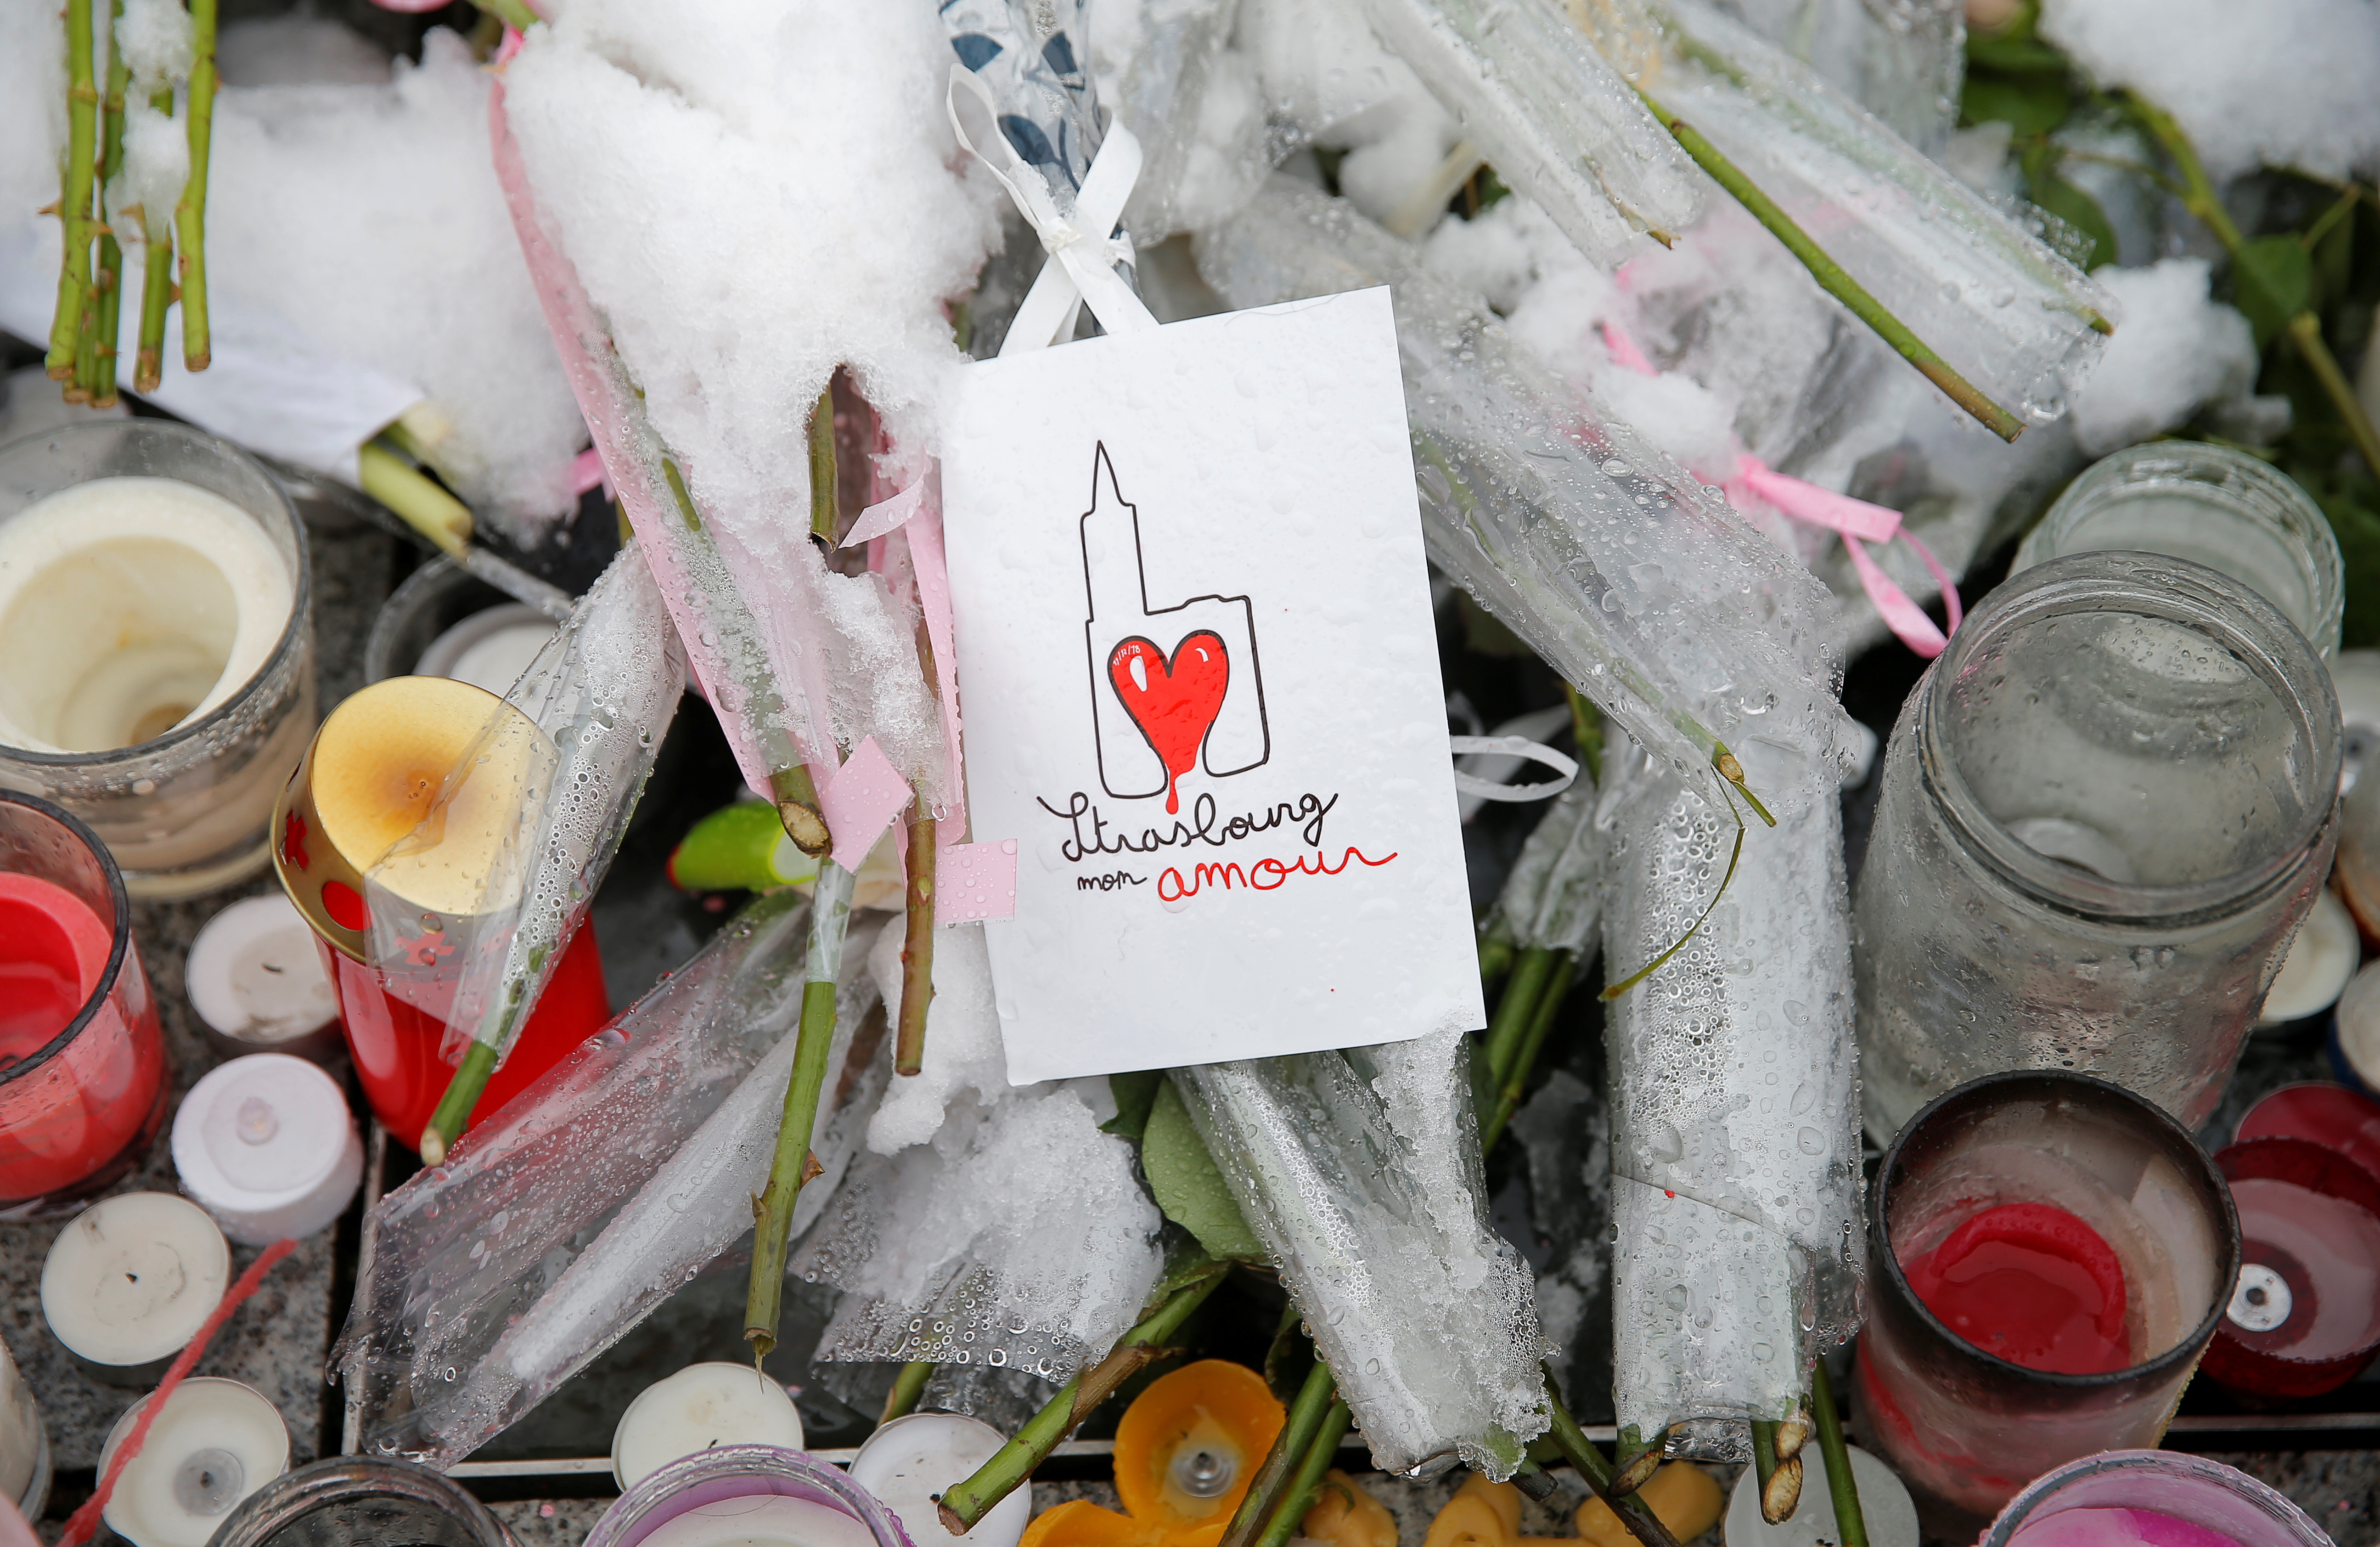 Fifth victim of Strasbourg market attack dies: prosecutor